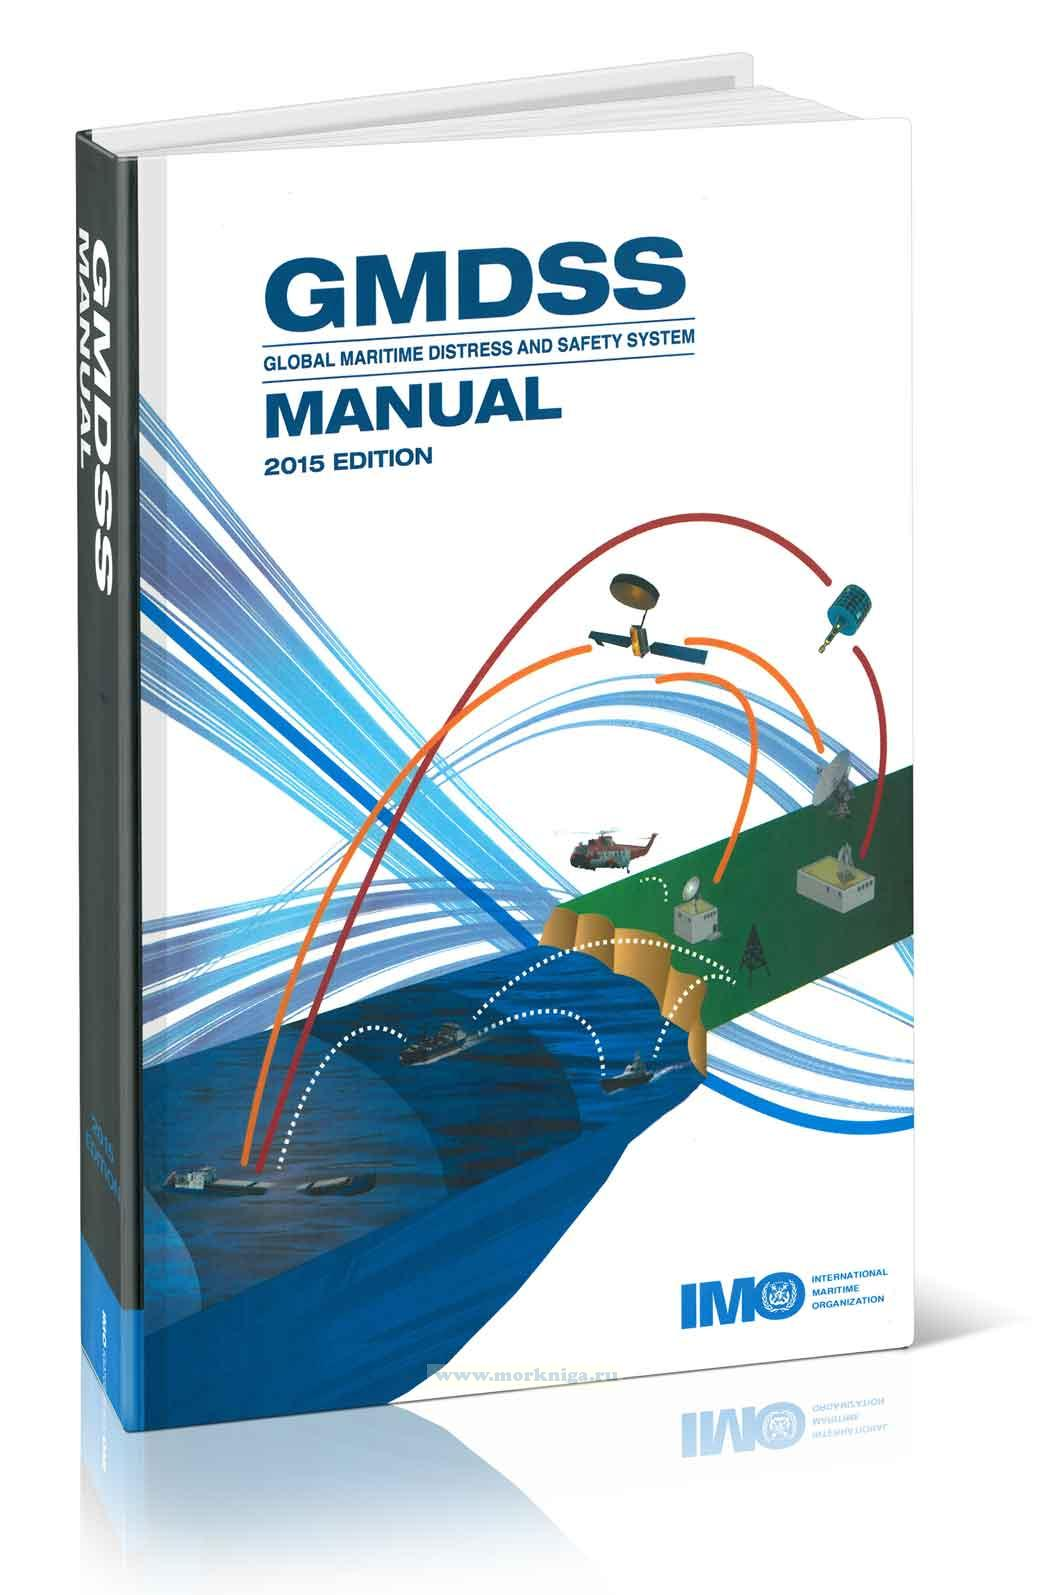 GMDSS manual (Global maritime distress and safety system) 15 edition